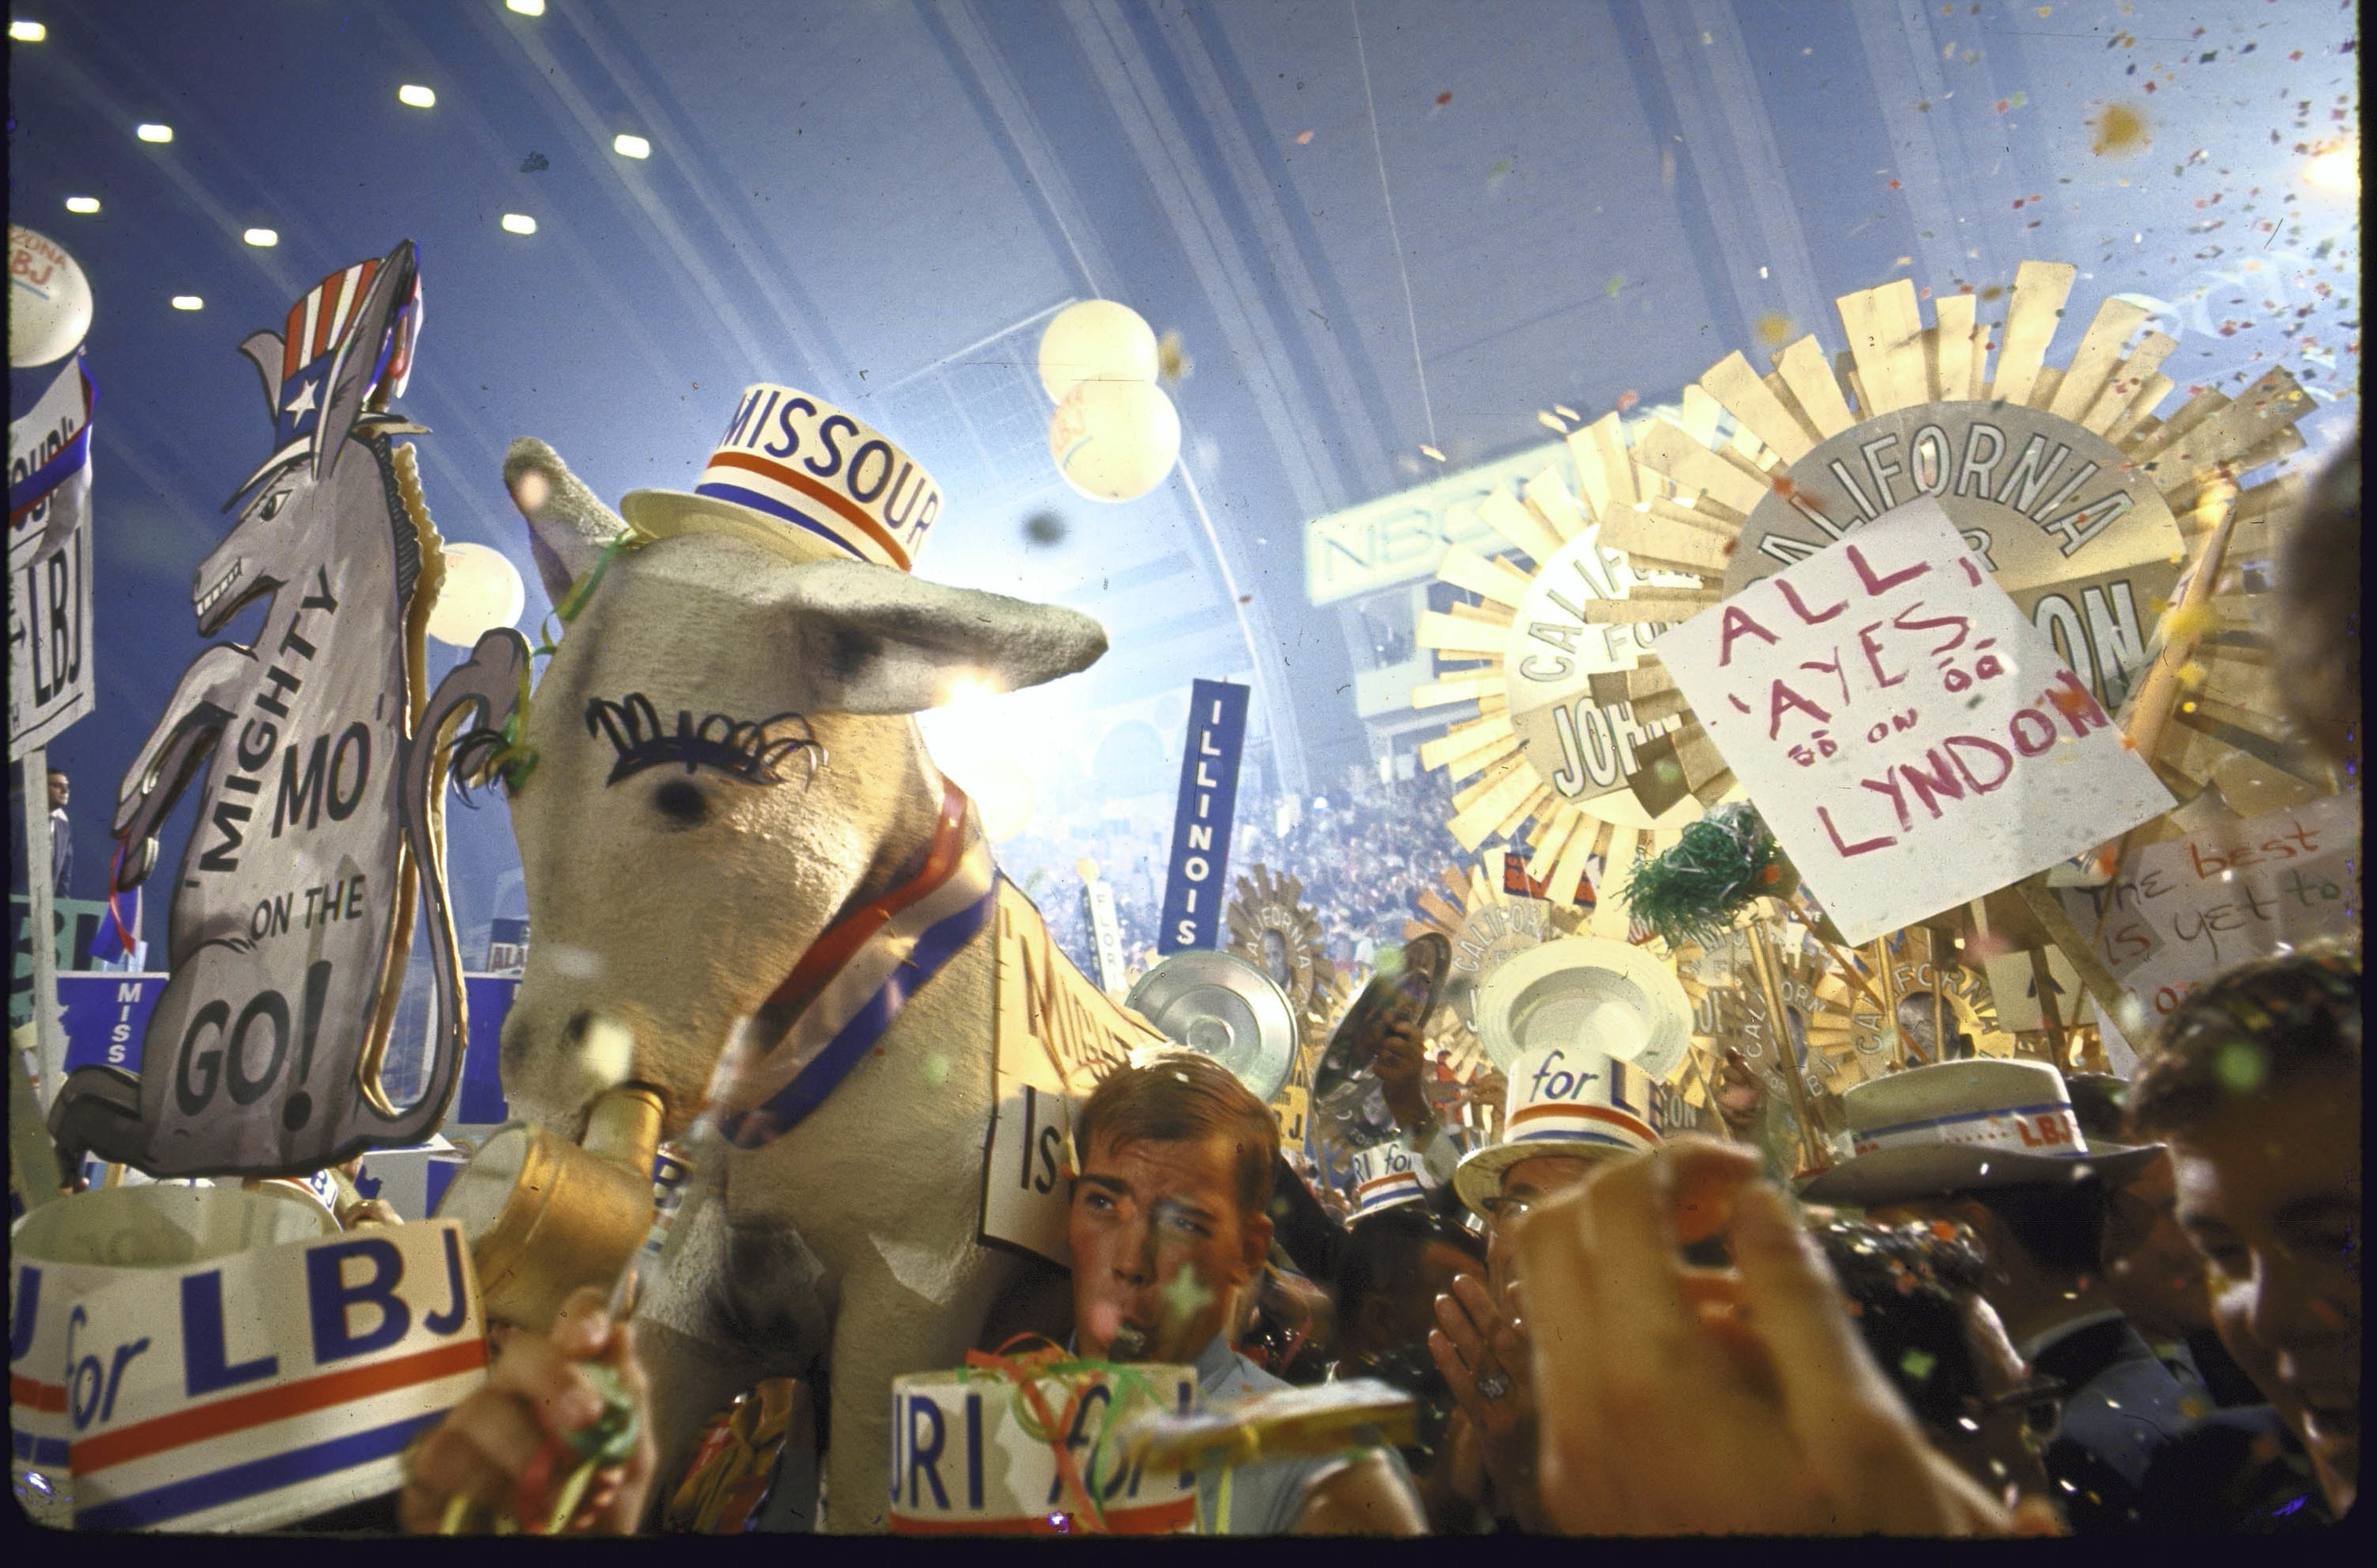 A giant donkey wearing a hat and a lot of people with signs celebrating